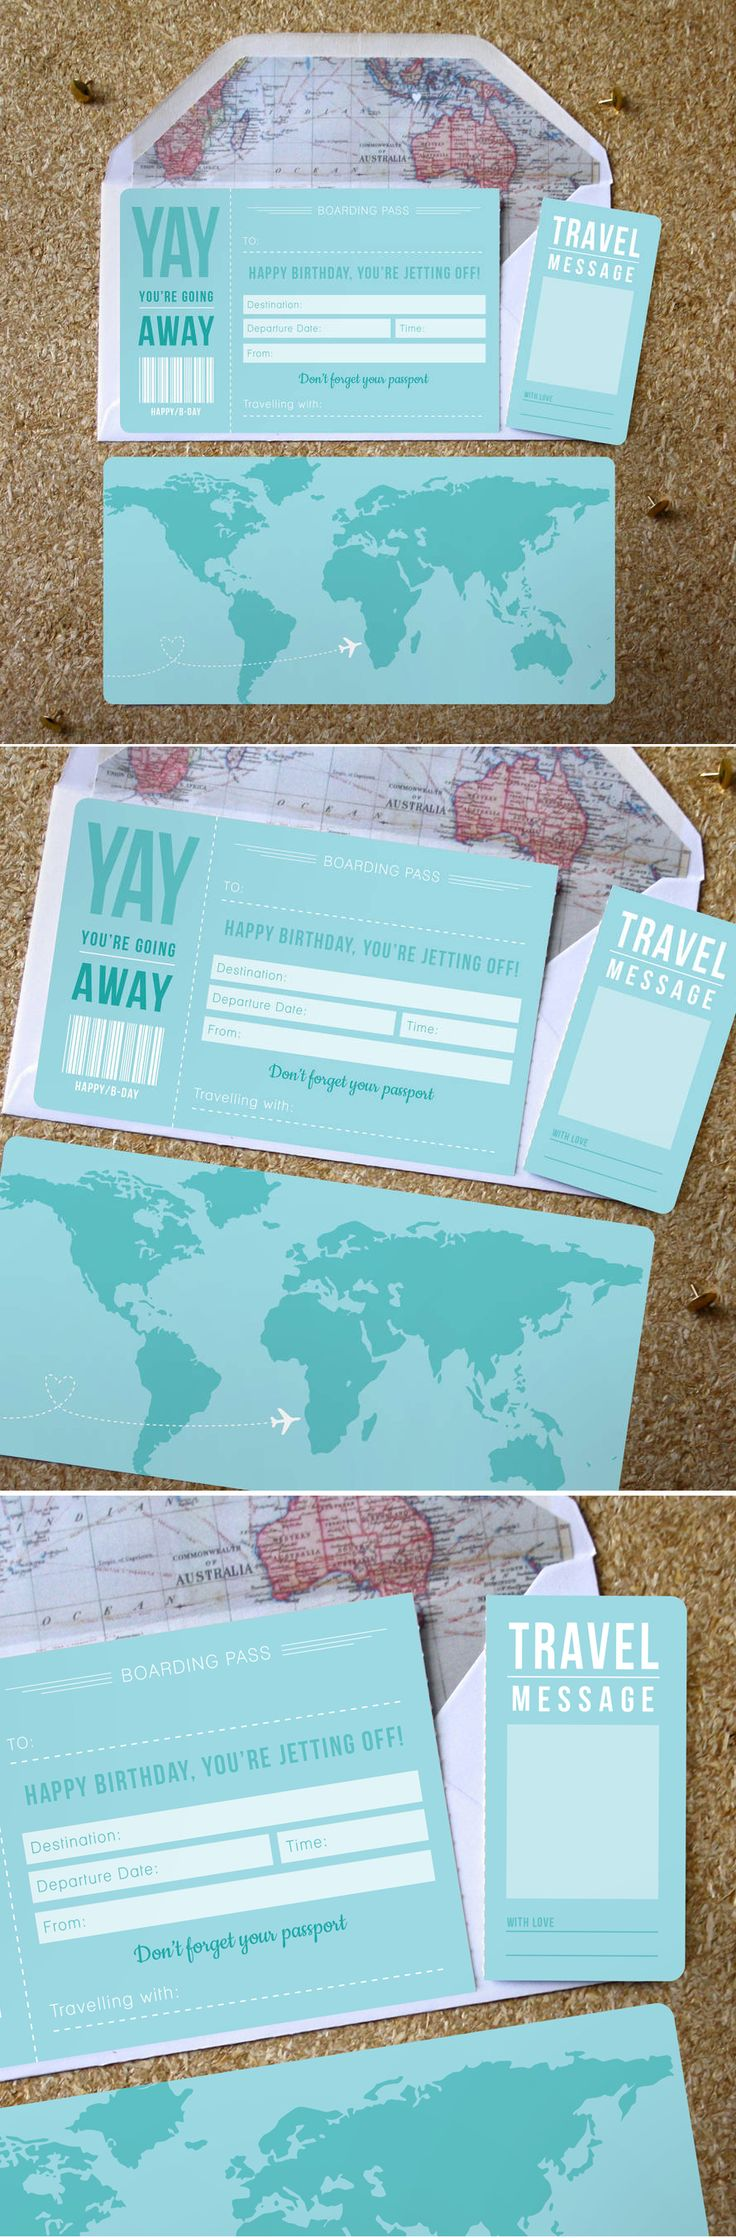 A great way to announce your surprise trip away for that someone special.  This is a perfect additional to an abroad gift, a great way to announce your surprise trip away. This ticket style birthday card is printed onto 400gsm Silk stock and features a perforated travel message card so that special someone can keep it forever. #birthdayboardingpass #yayyou'regoingaway #surprisetrip #happybirthday #ticket #ticketcard #tearofmessage #personal #map